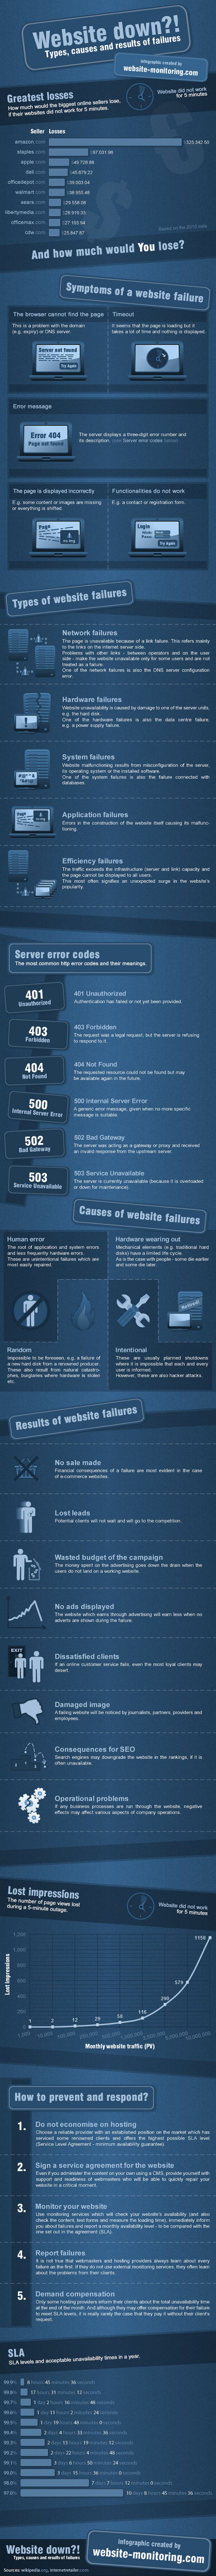 Website Down?! Infographic